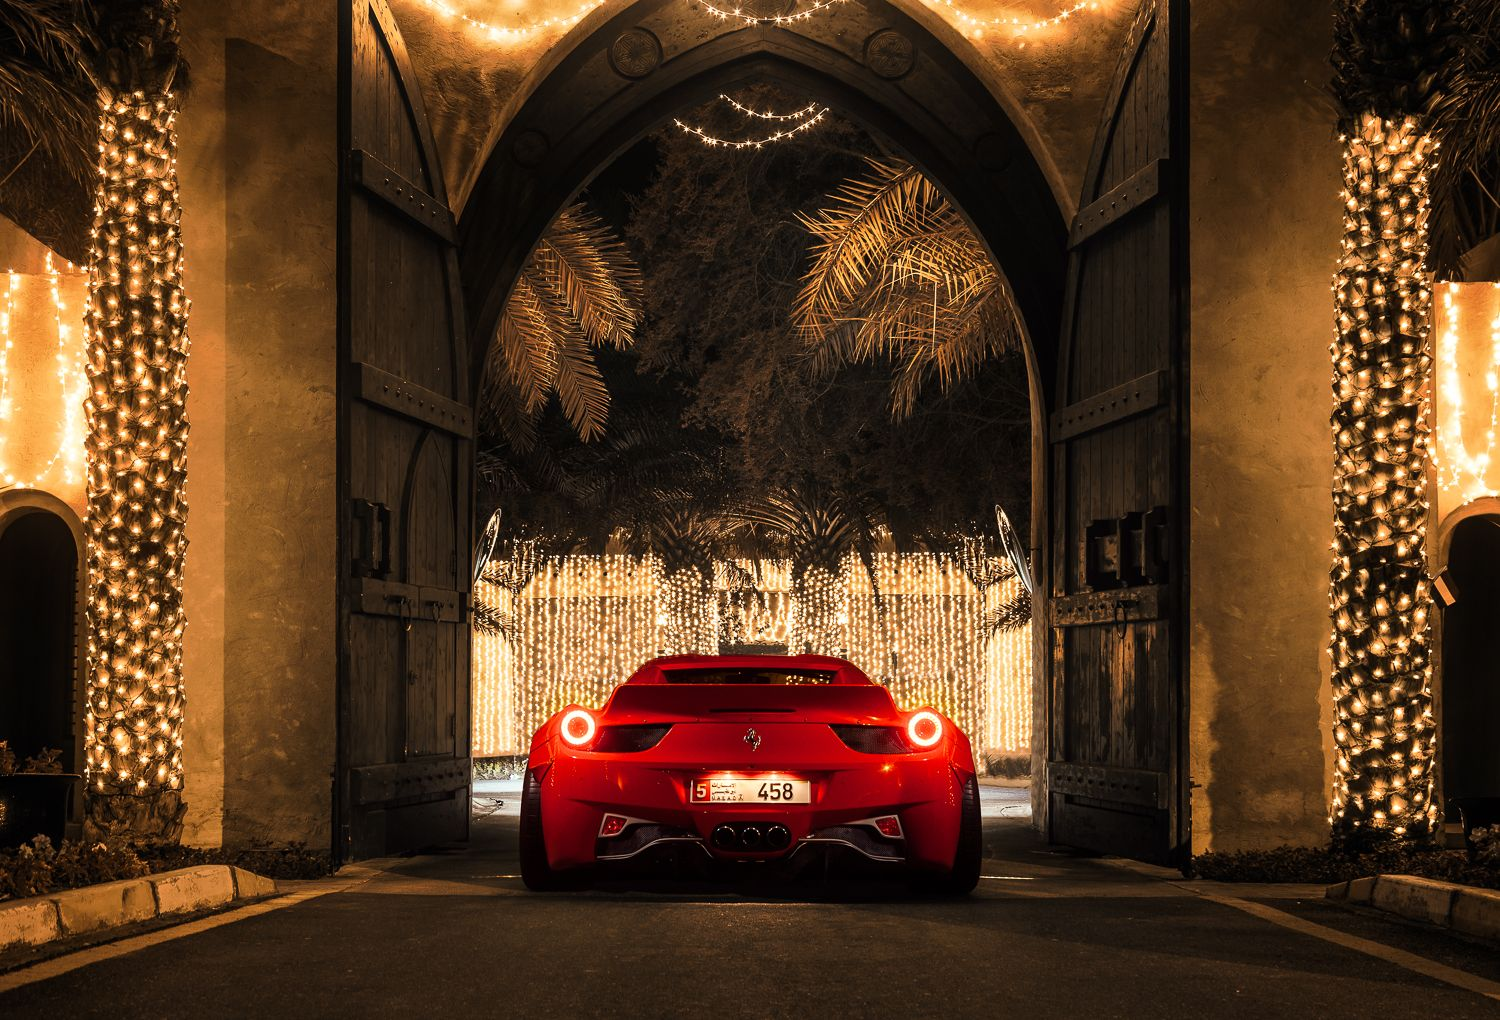 Dallas Texas Based Commercial Automotive Professional Photographer Pepper Yandell Car Captured In This Image With Images Car Billionaire Lifestyle Amazing Cars